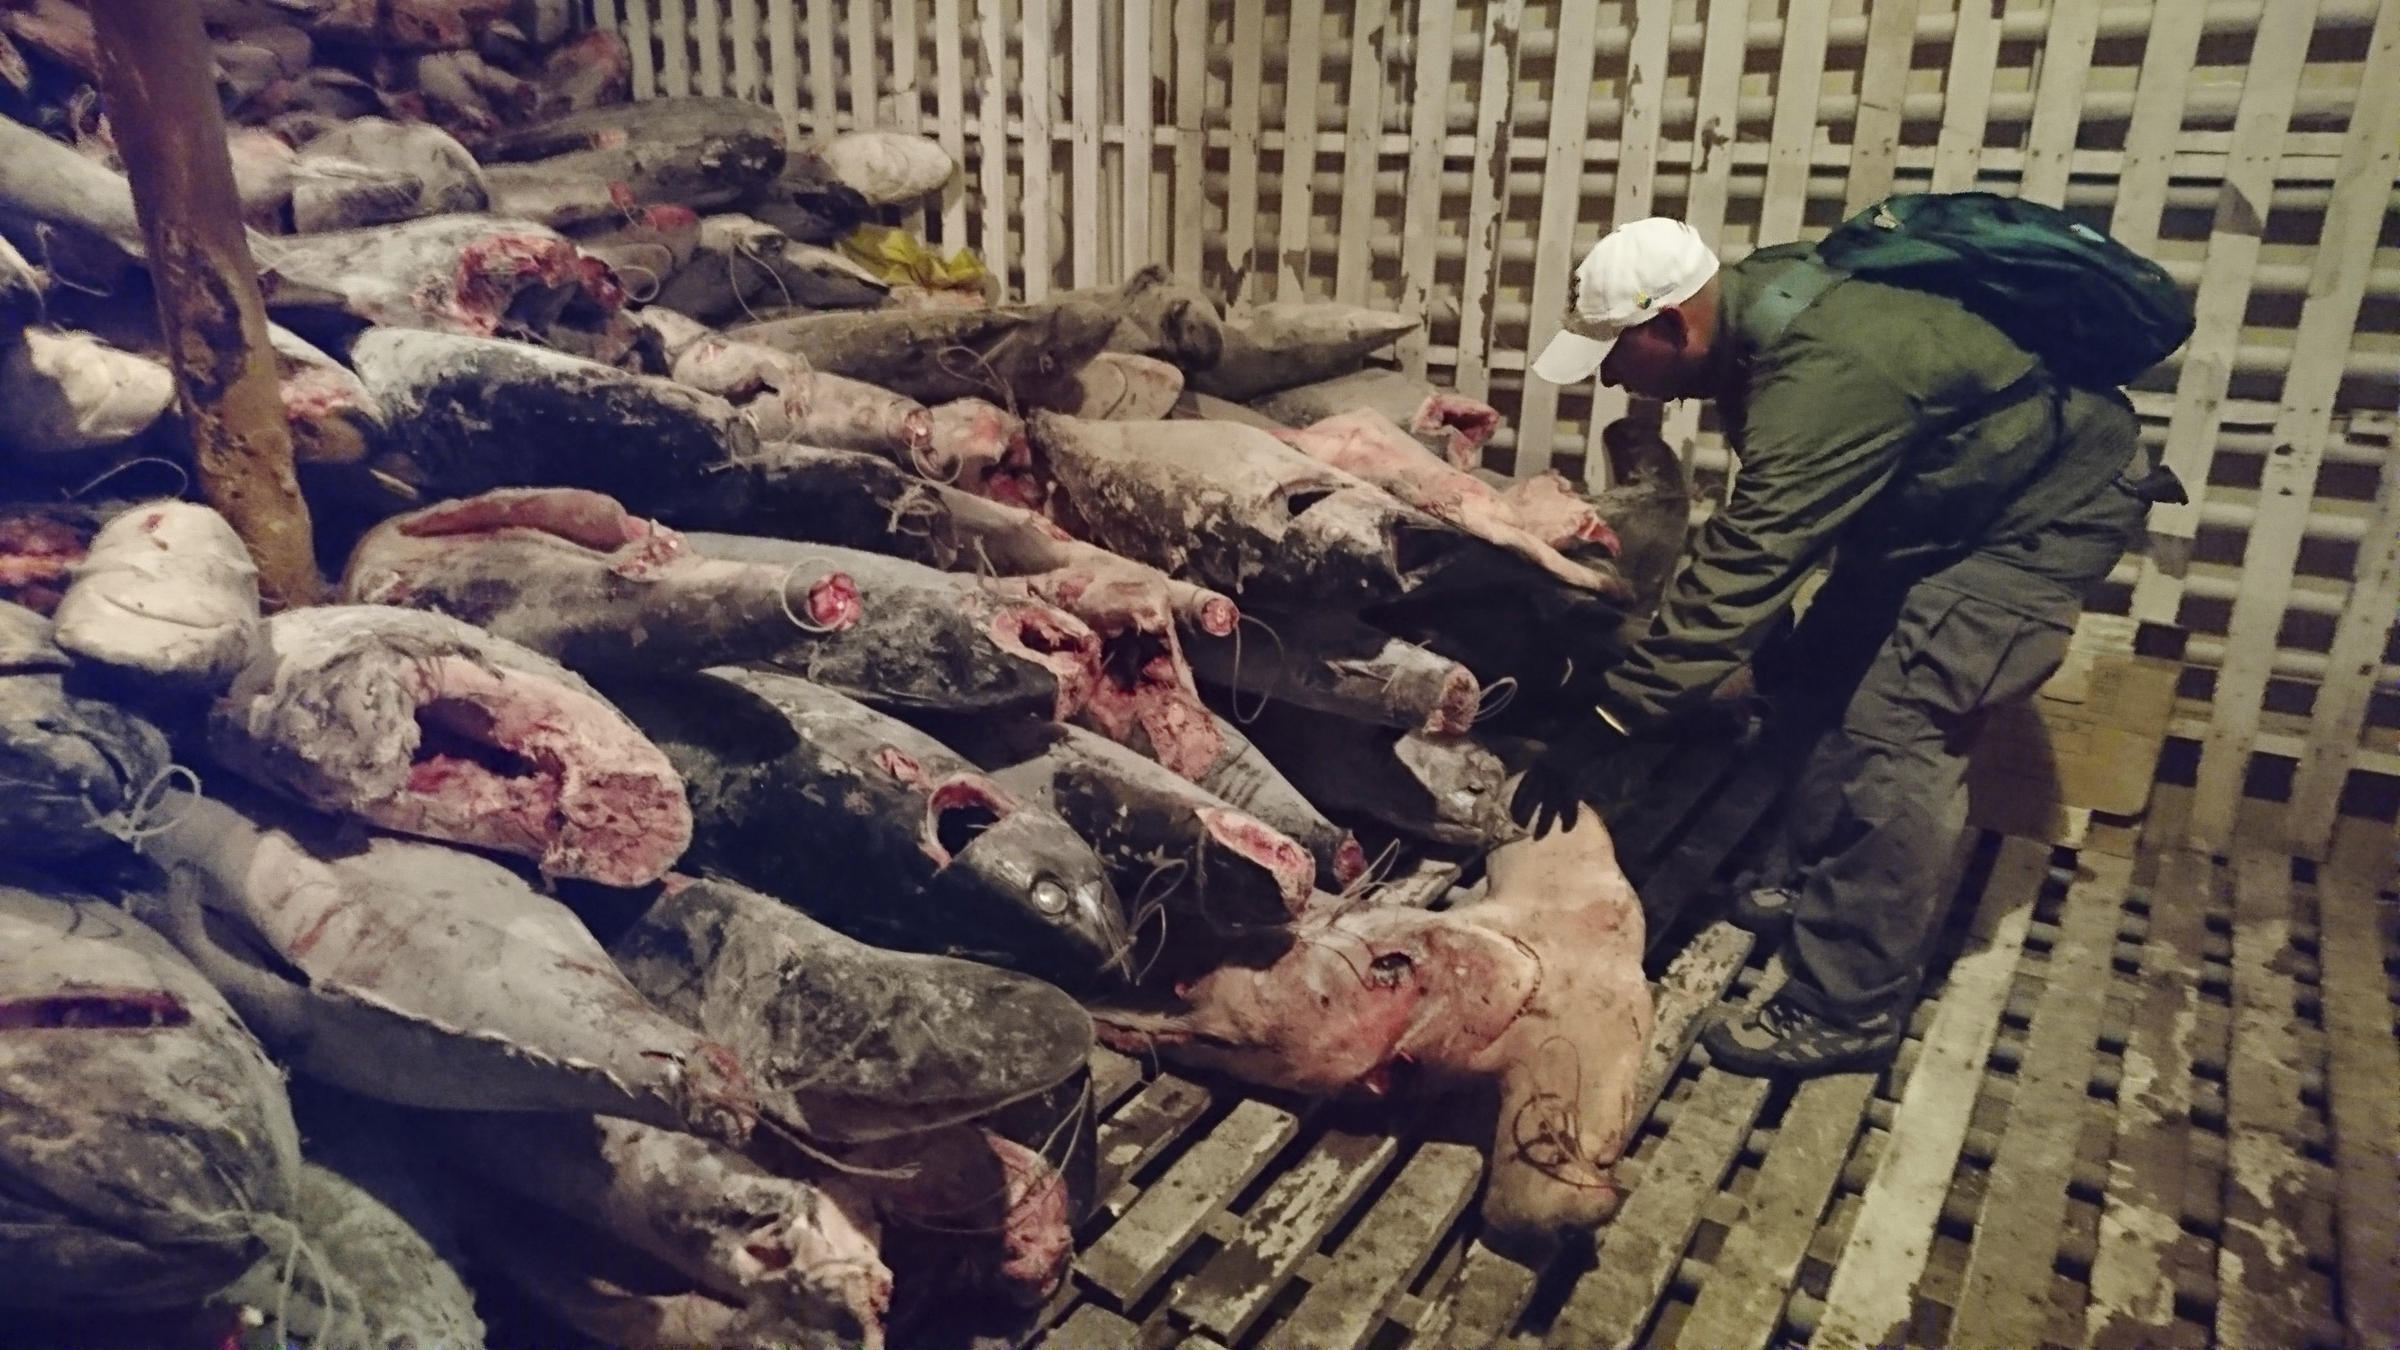 Fishermen Caught With 6600 Sharks In Galápagos, Now Headed To Prison